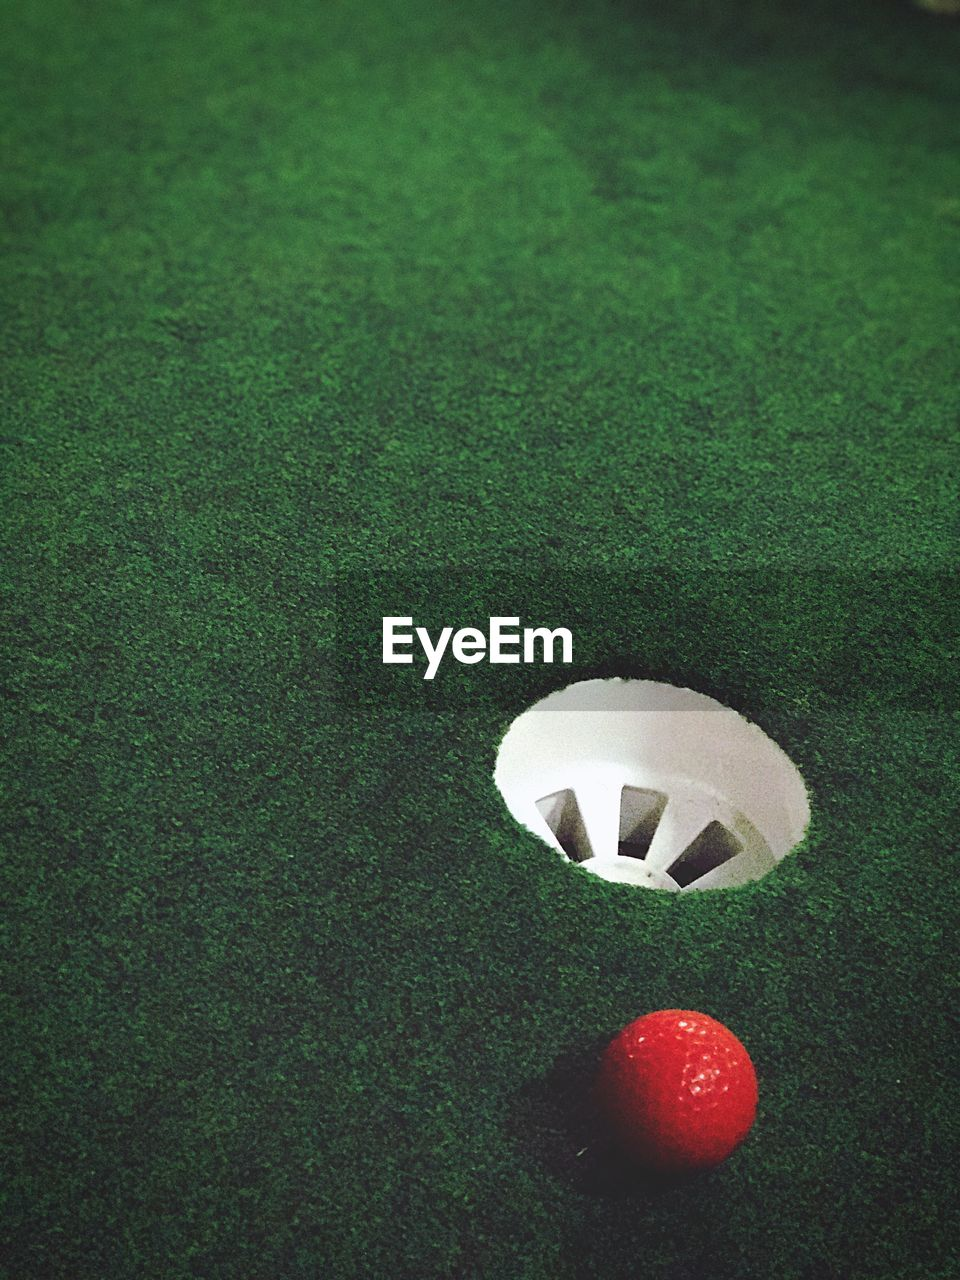 sport, grass, ball, golf ball, green color, golf, green - golf course, turf, golf course, lawn, playing field, competitive sport, red, leisure games, no people, tee, competition, soccer field, close-up, day, outdoors, snooker, pool ball